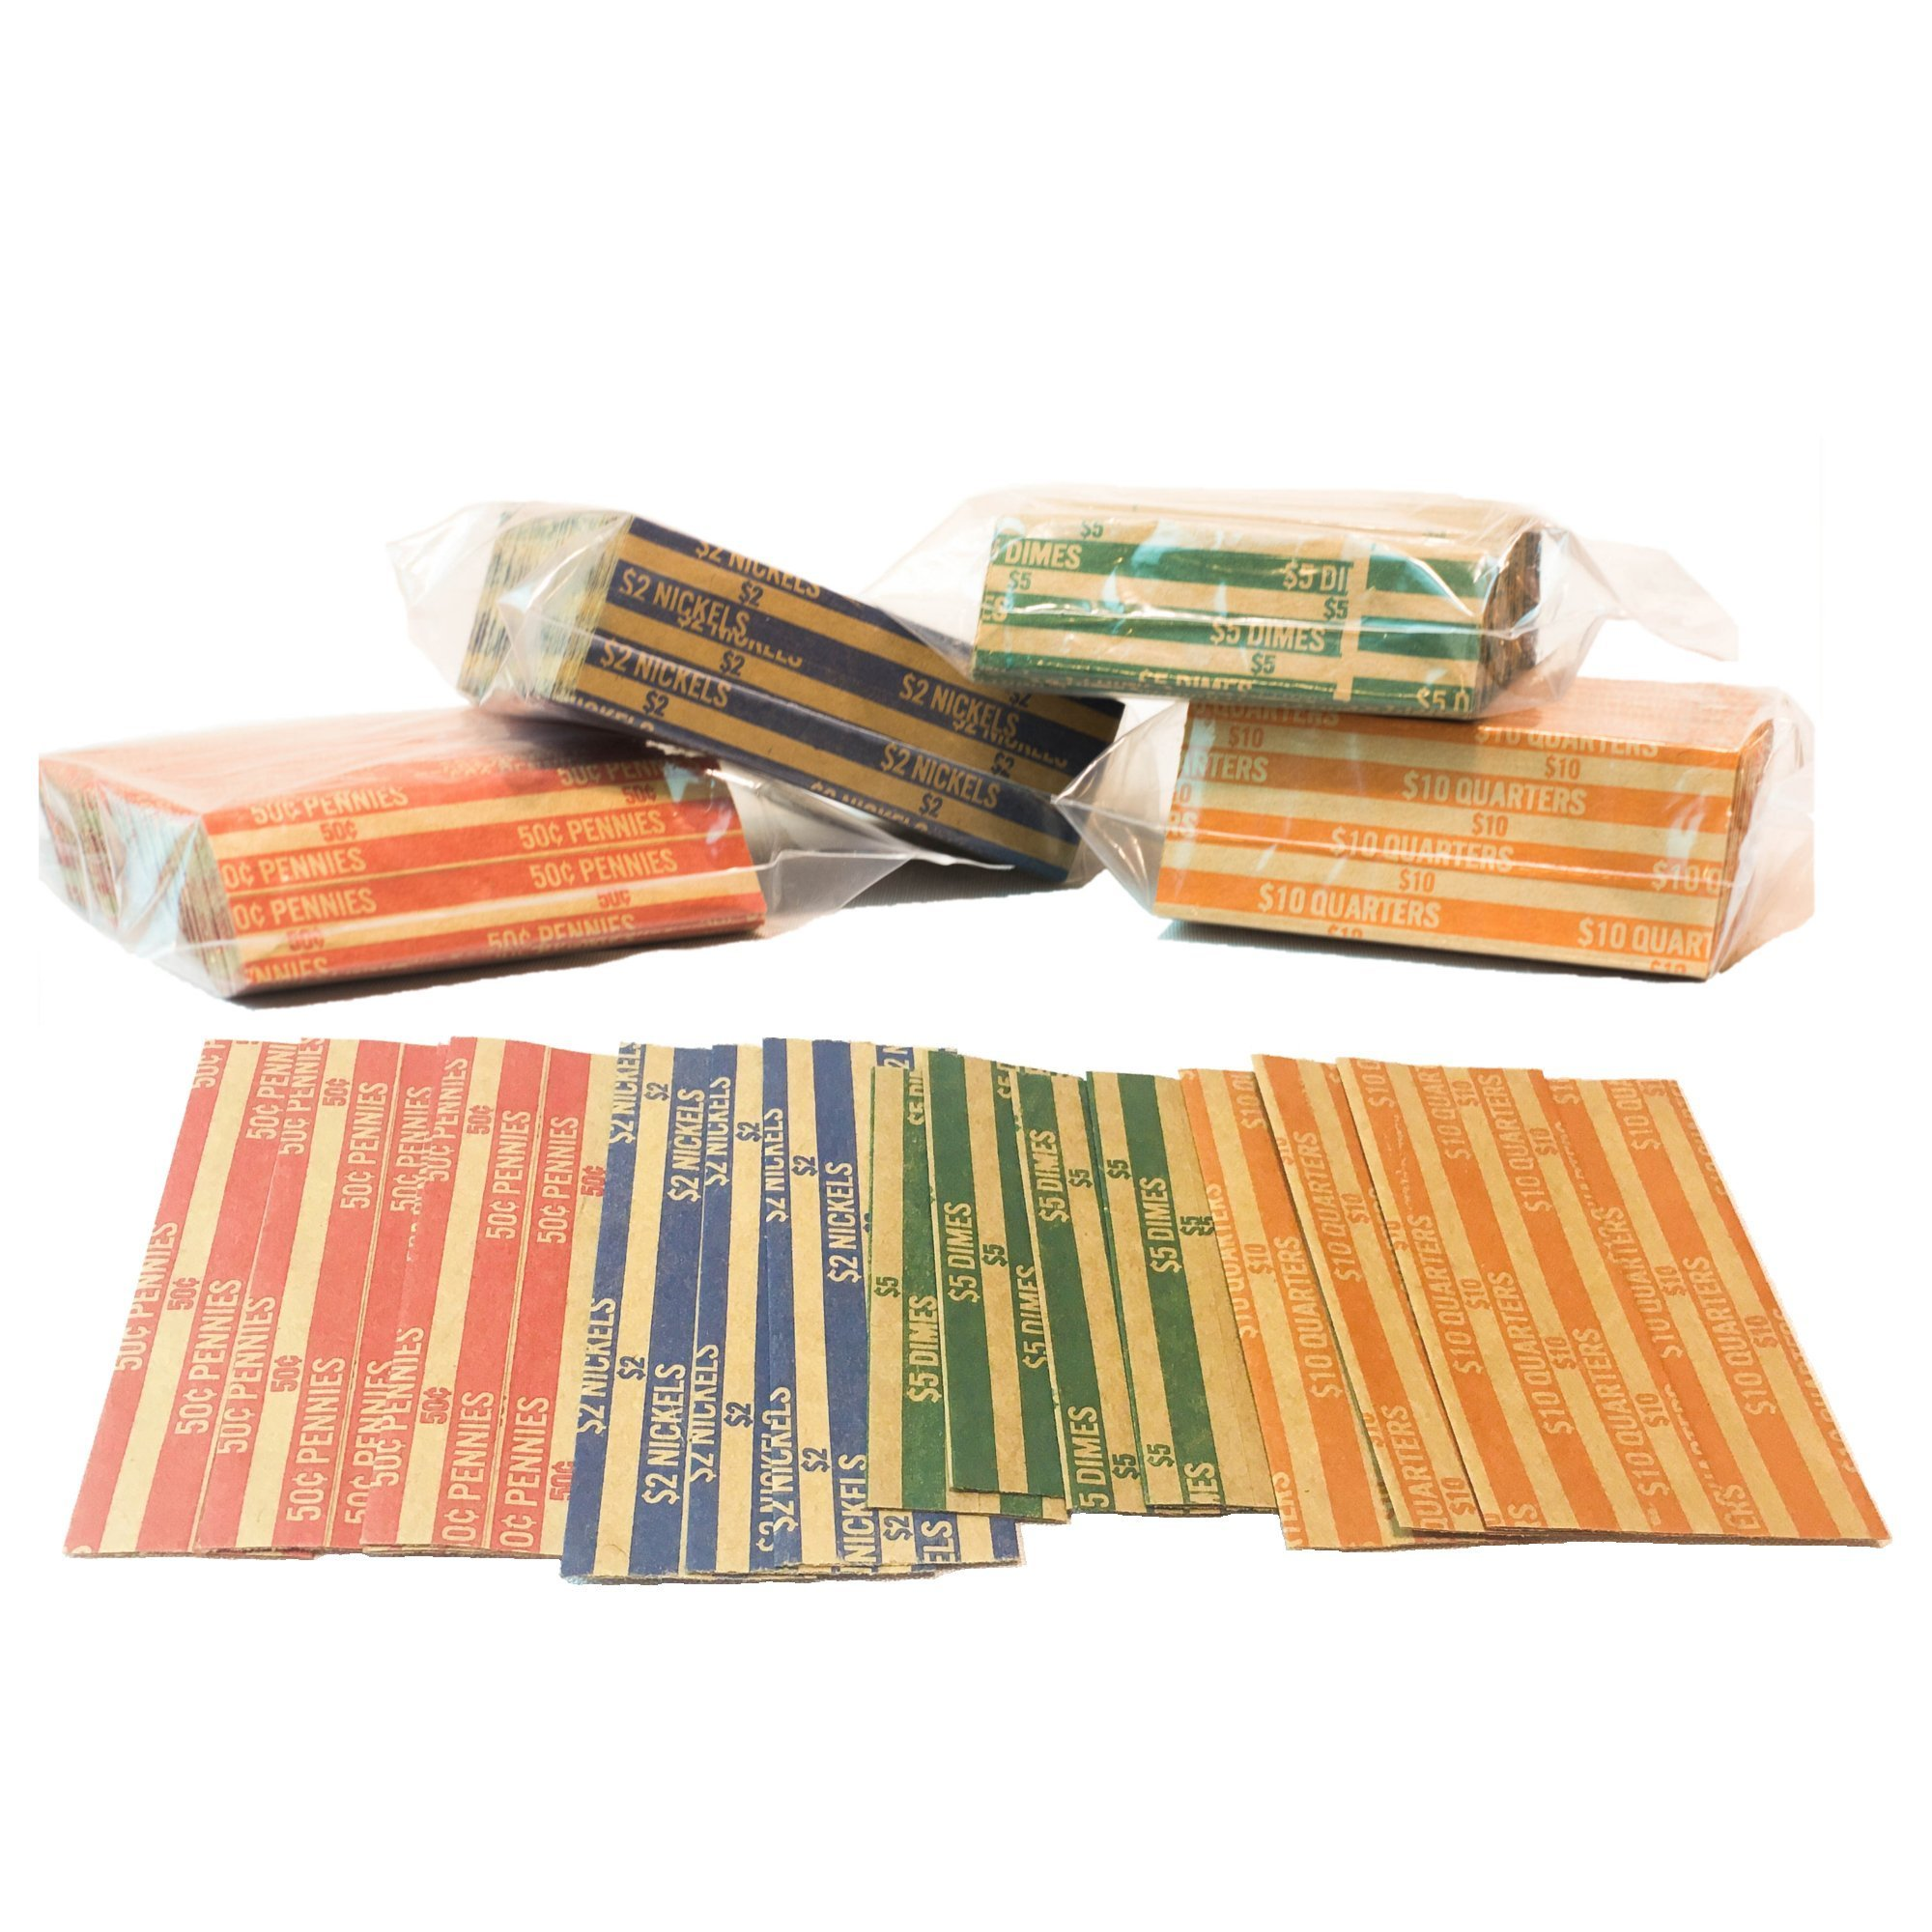 J Mark Neatly-Packed Flat Coin Roll Wrappers Extra Pennies (Quarters, Dimes, Nickels, Pennies), ABA Striped Kraft Paper Coin Roll Wrappers, Includes Free J Mark Deposit Slip, (1,000-Pack USD)